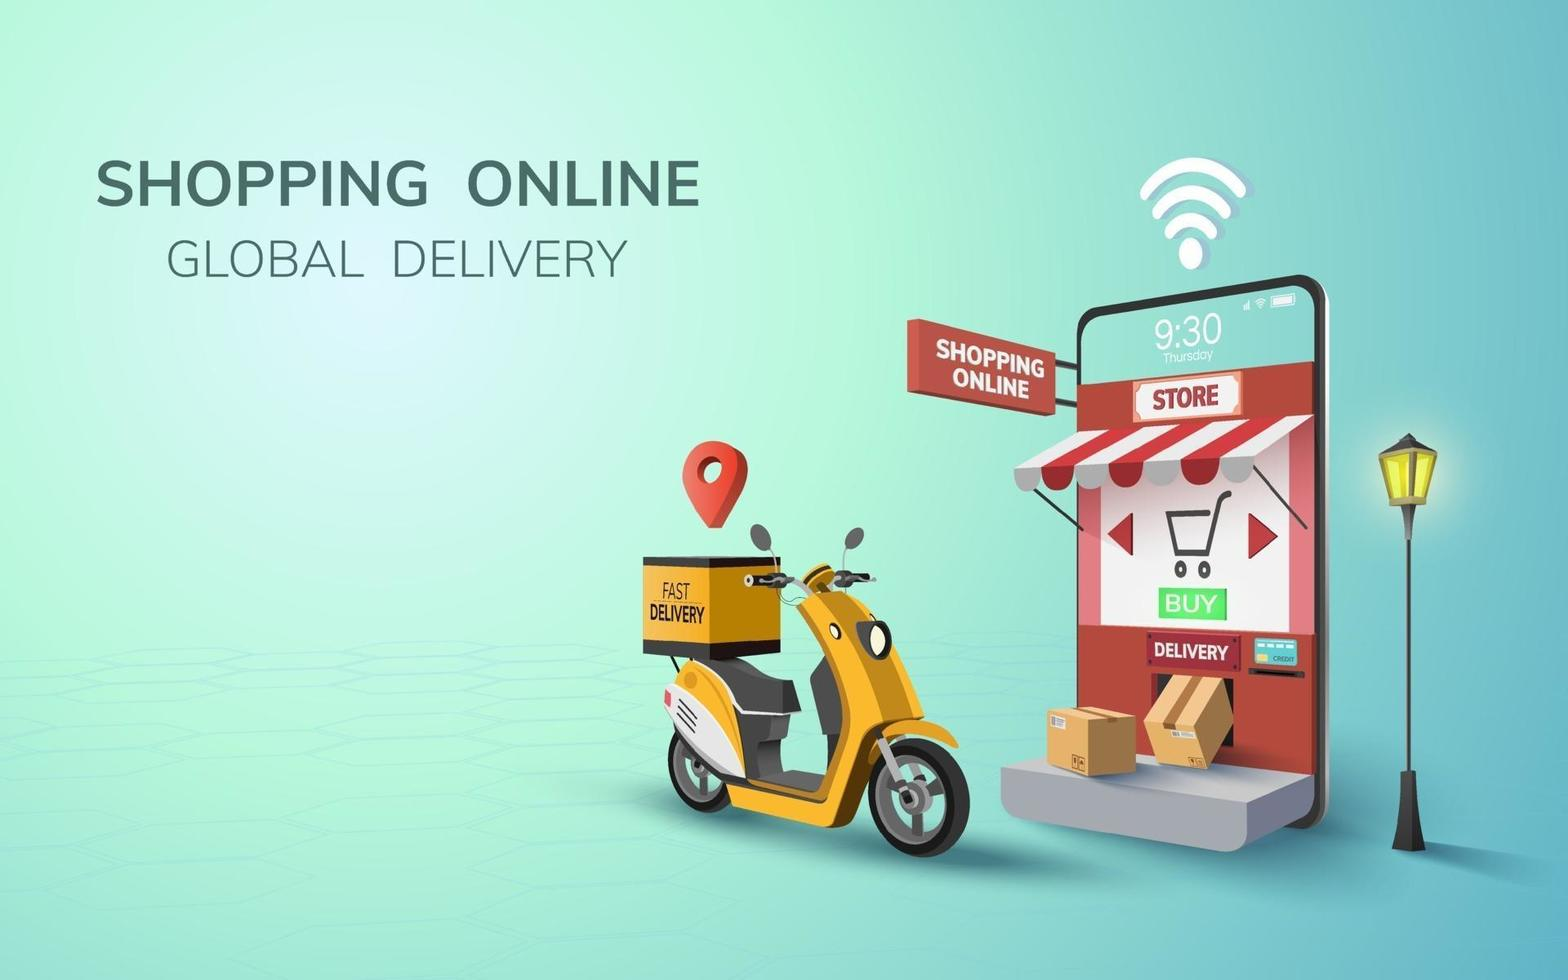 Digital Online Free Global Delivery on Scooter with mobile phone in website background concept for passenger food shipment vector